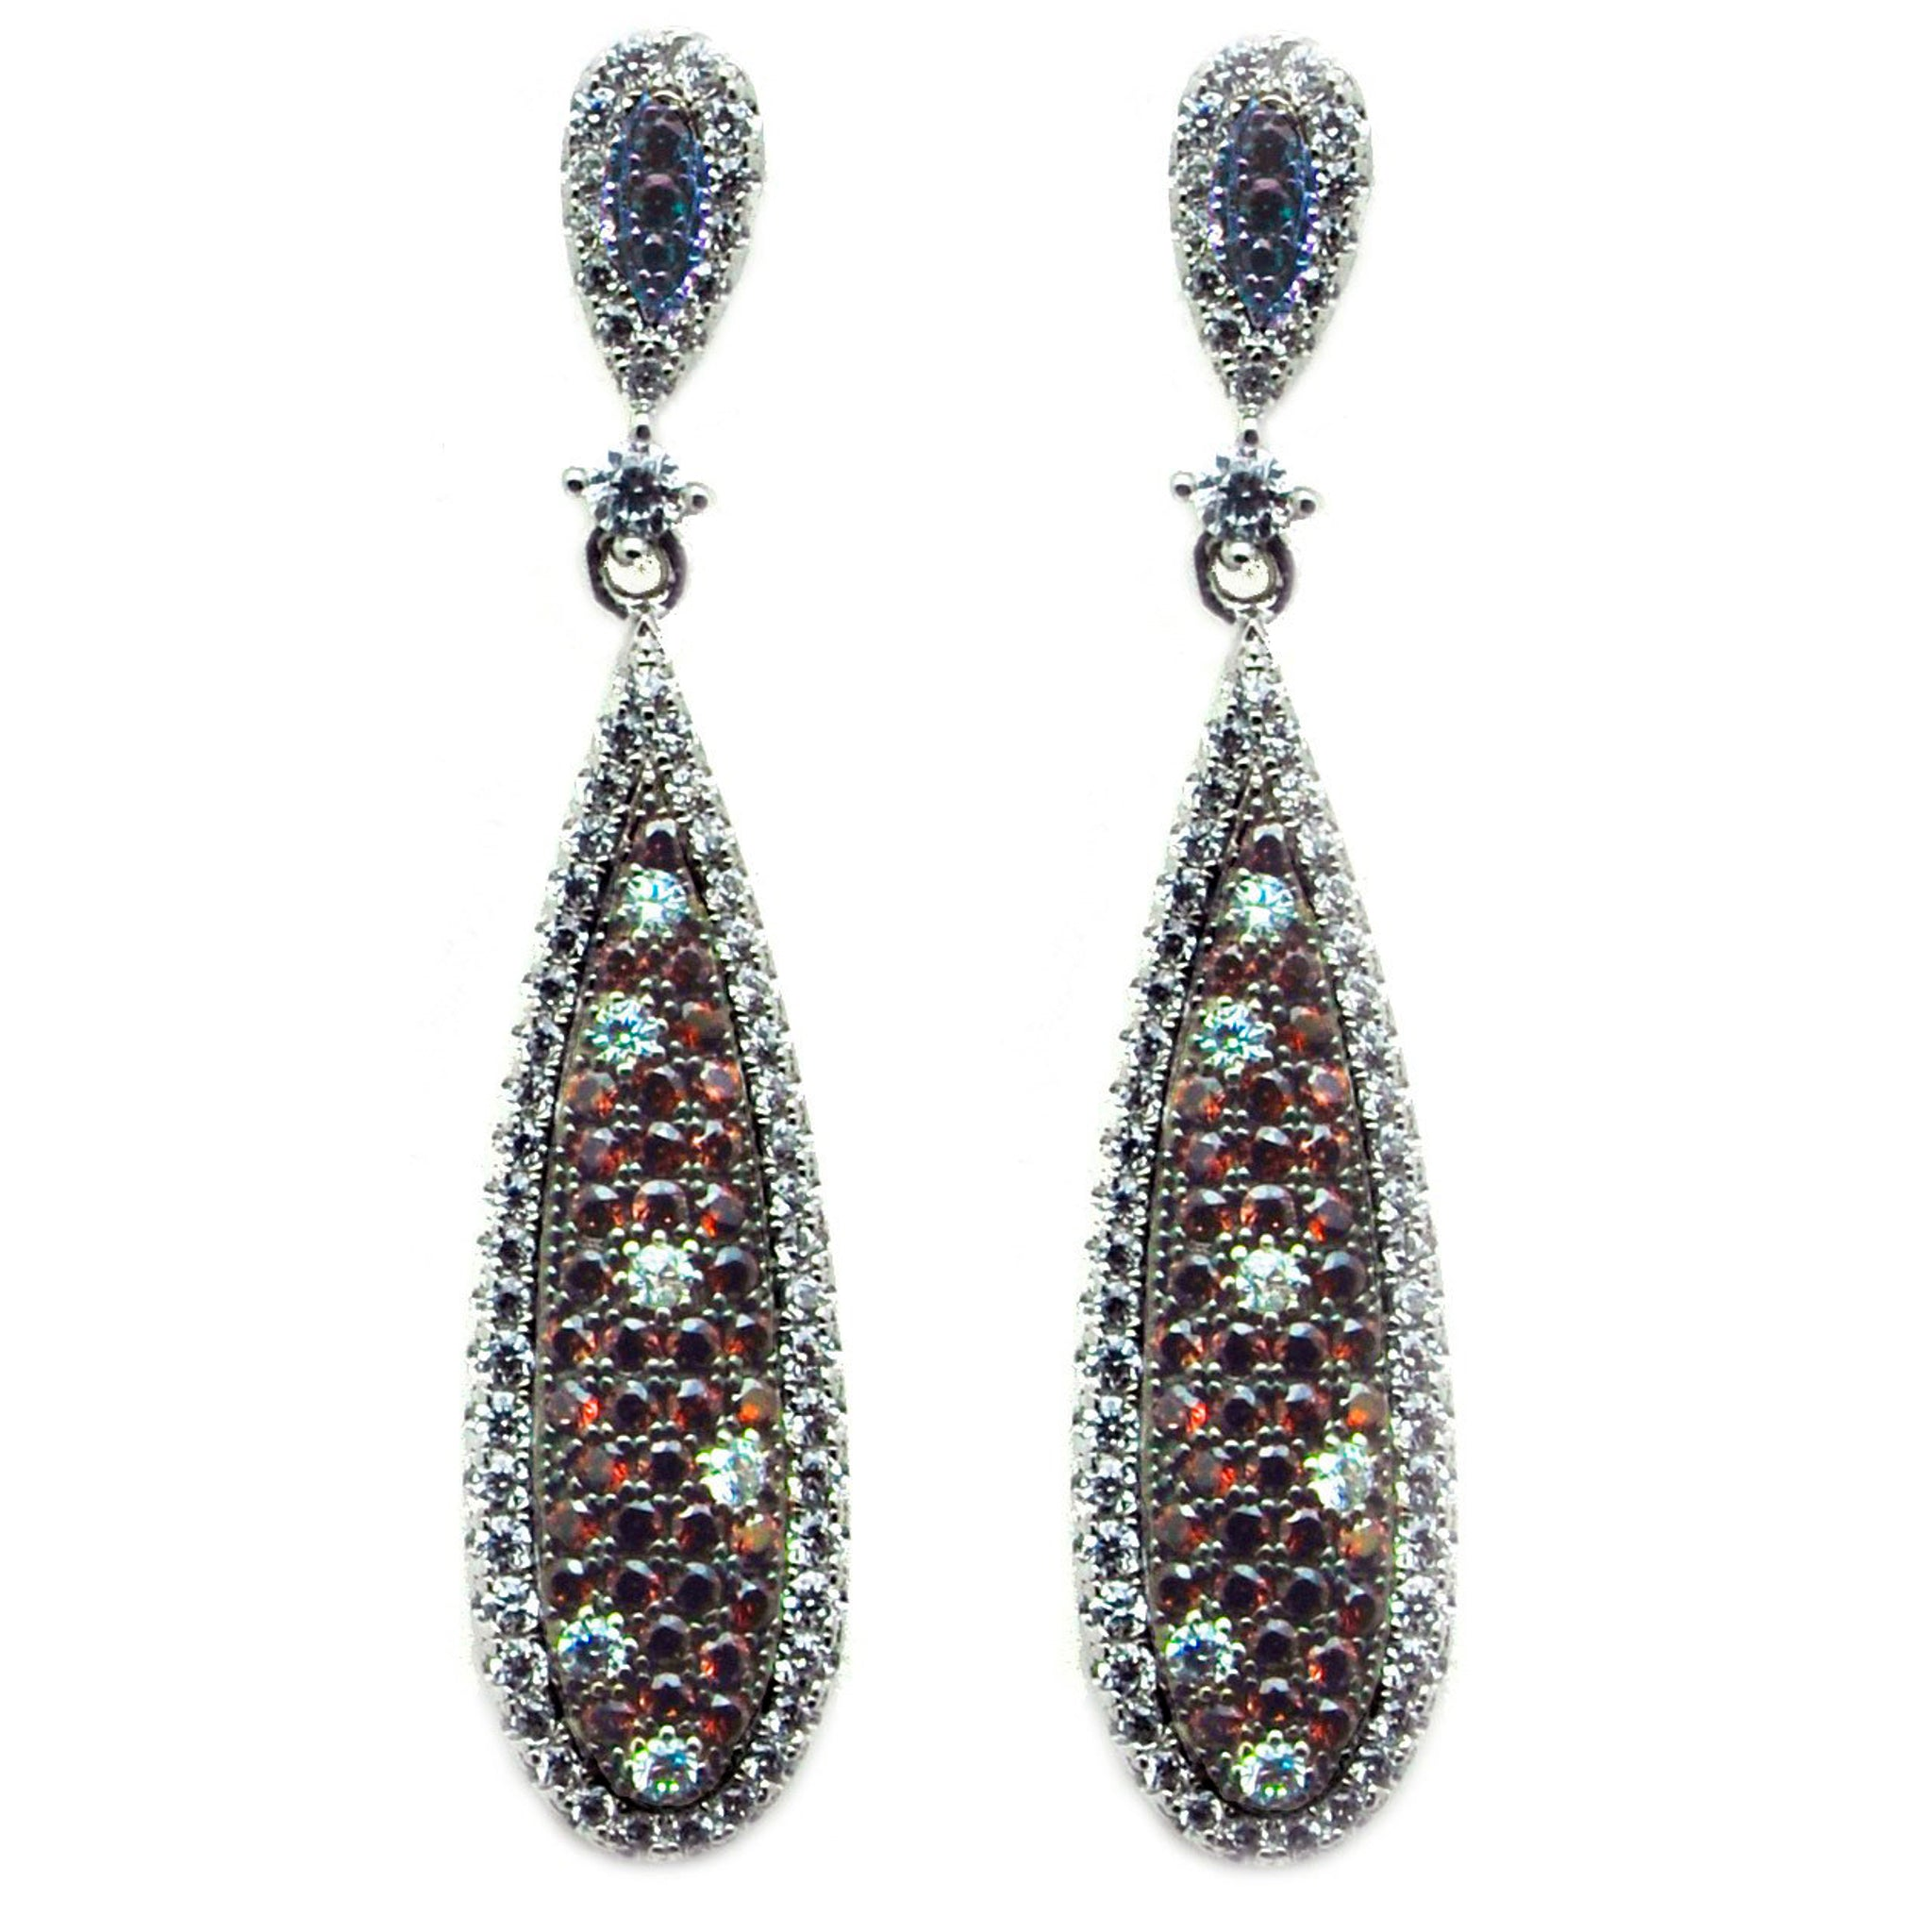 Elegant chocolate chip and white cubic zirconia drop earrings